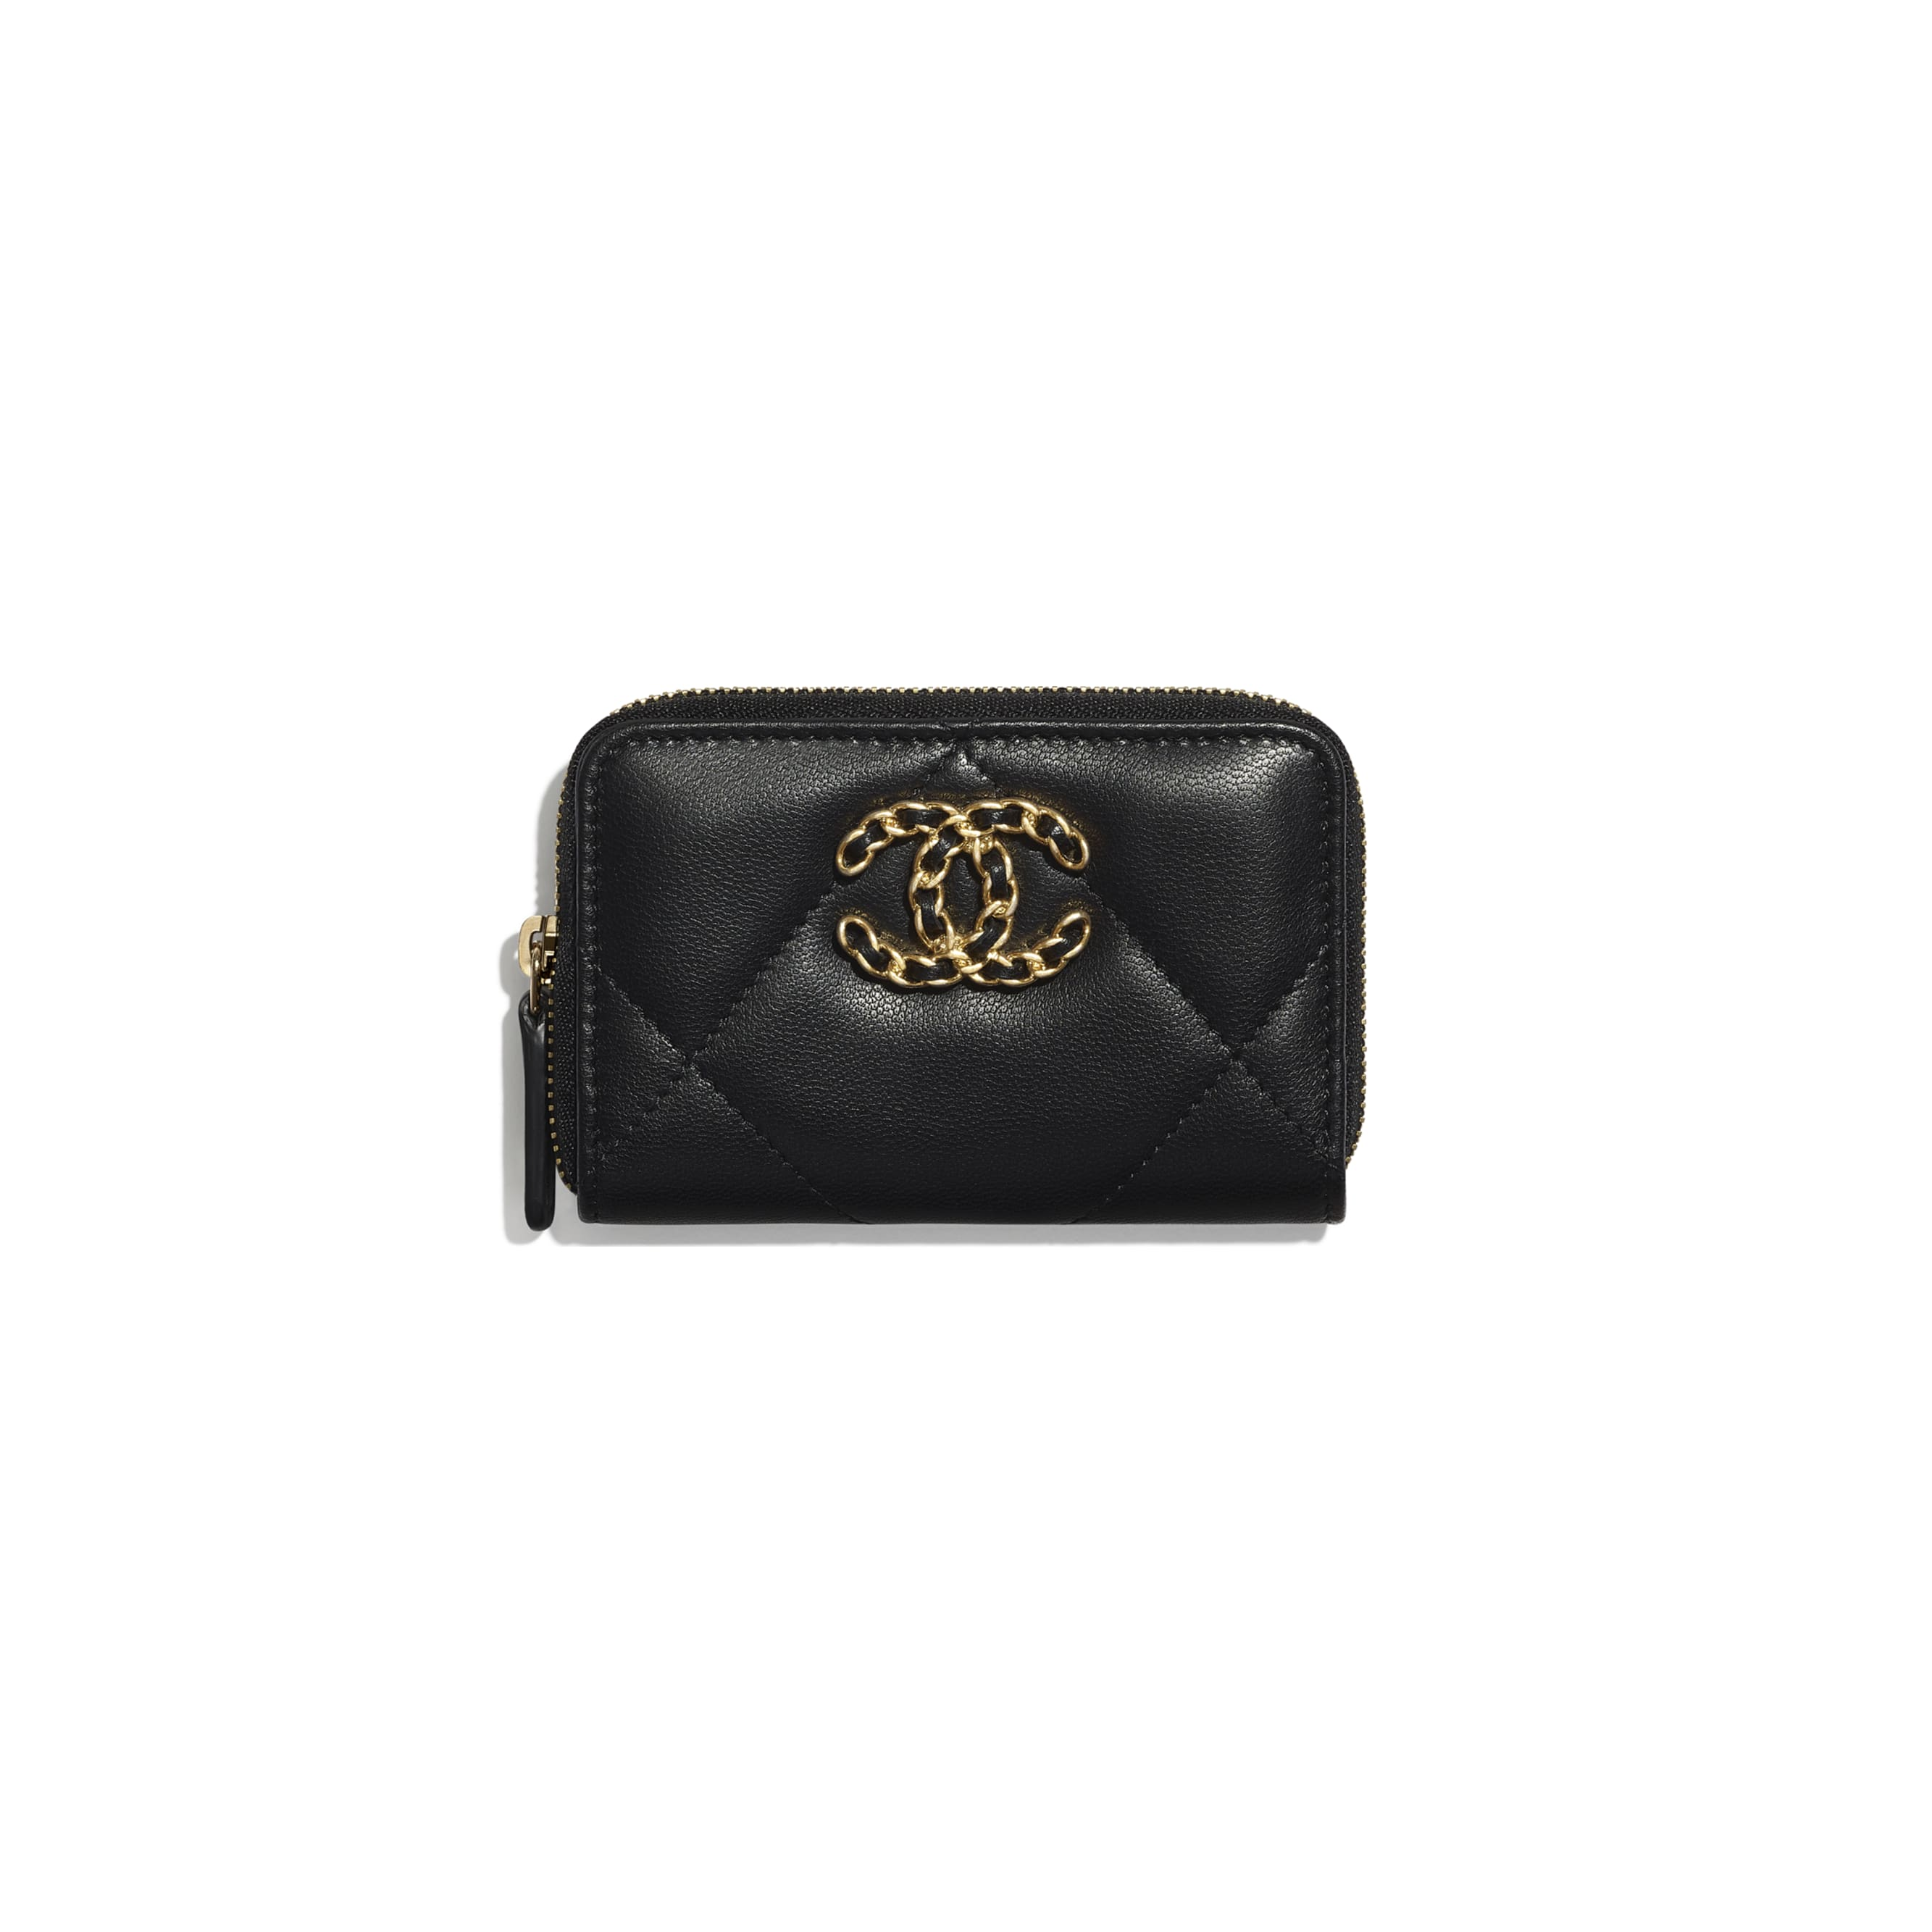 CHANEL 19 Zipped Coin Purse - Black - Shiny Goatskin, Gold-Tone, Silver-Tone & Ruthenium-Finish Metal - CHANEL - Default view - see standard sized version